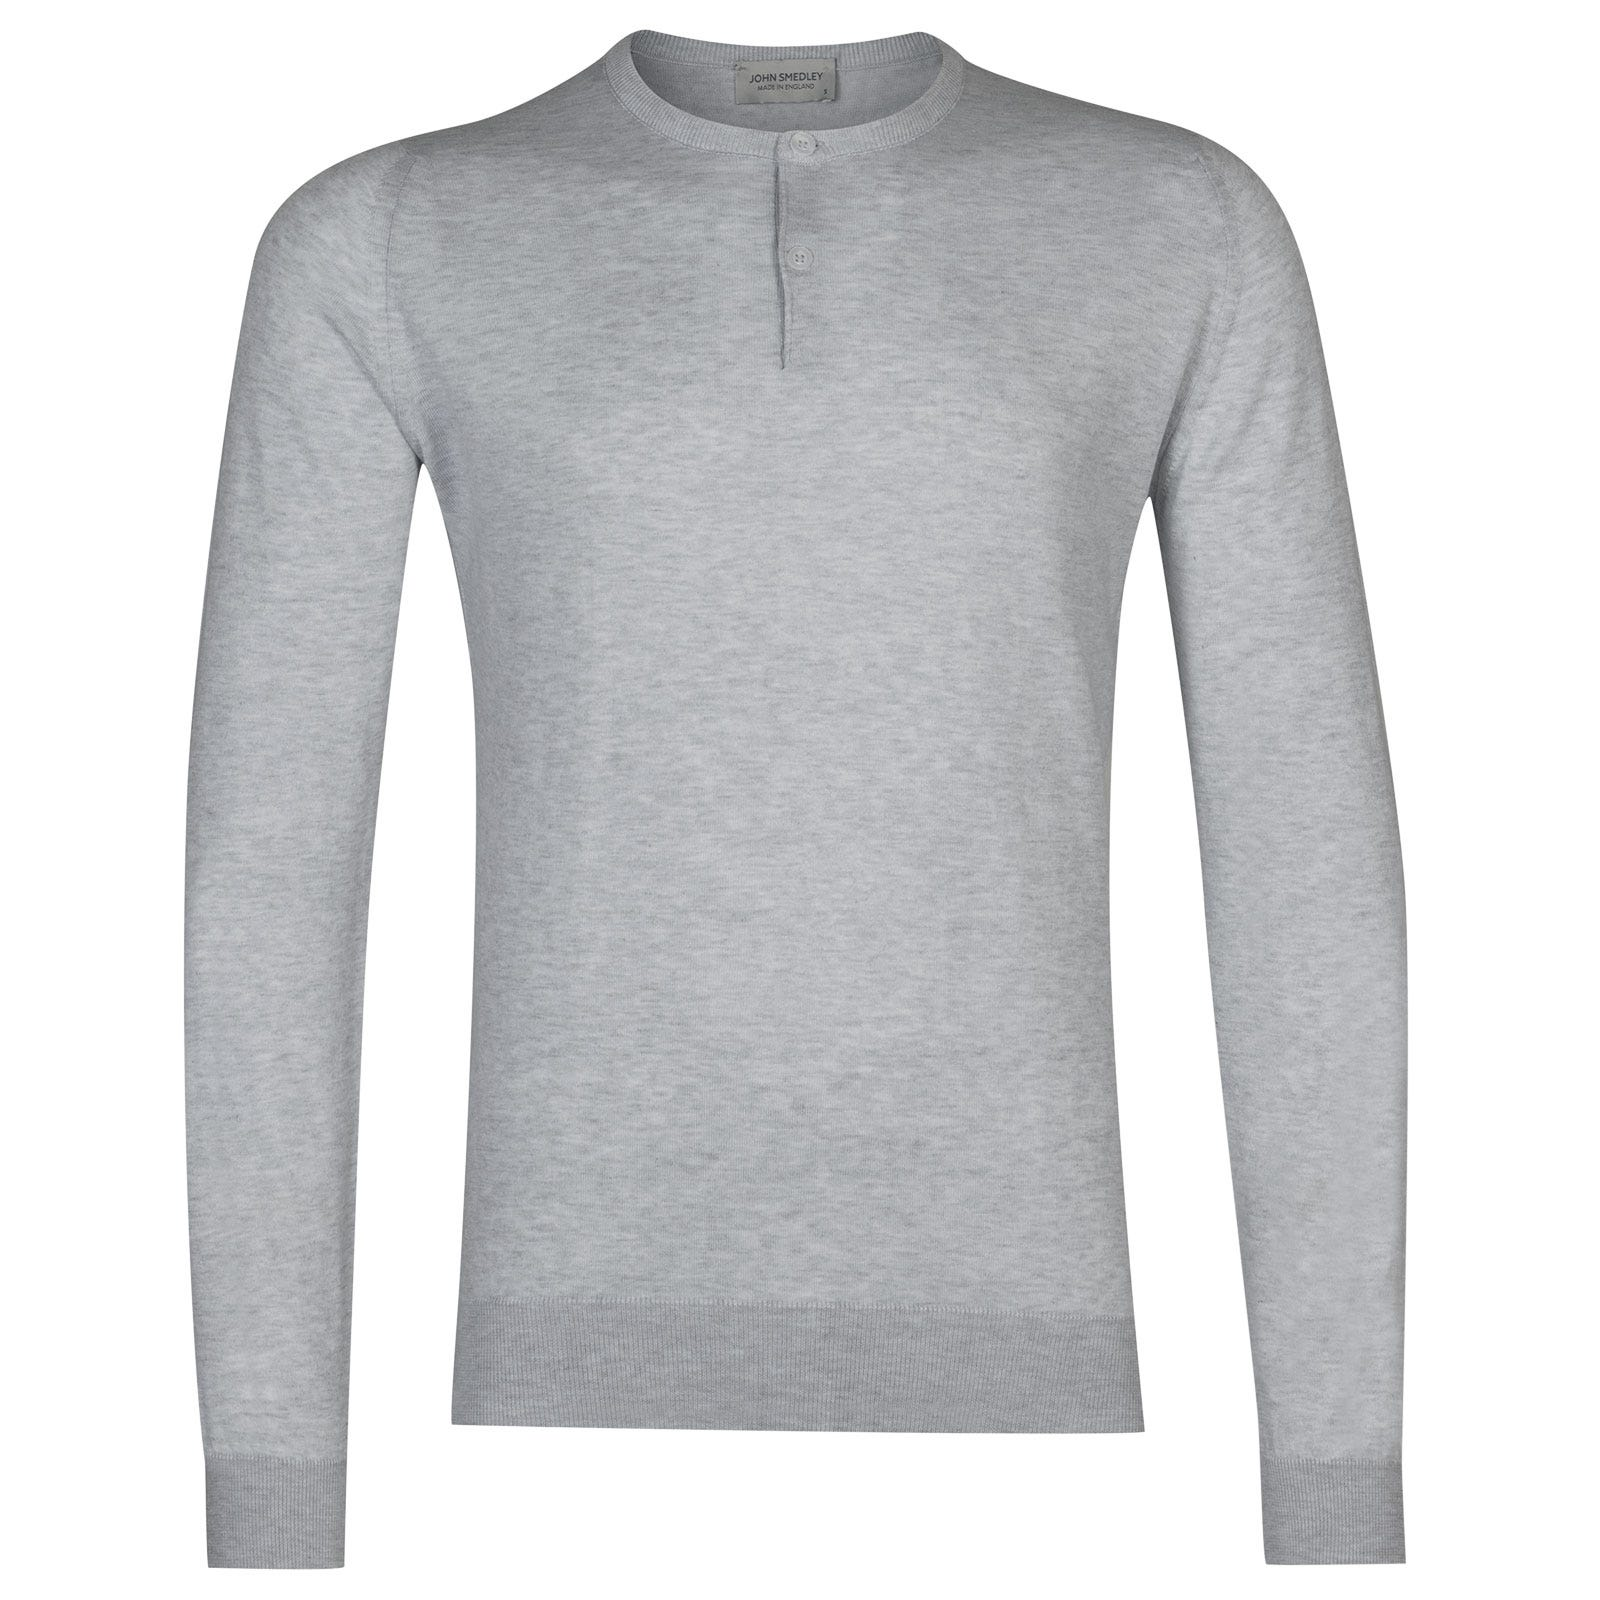 wembury-feather-grey-L